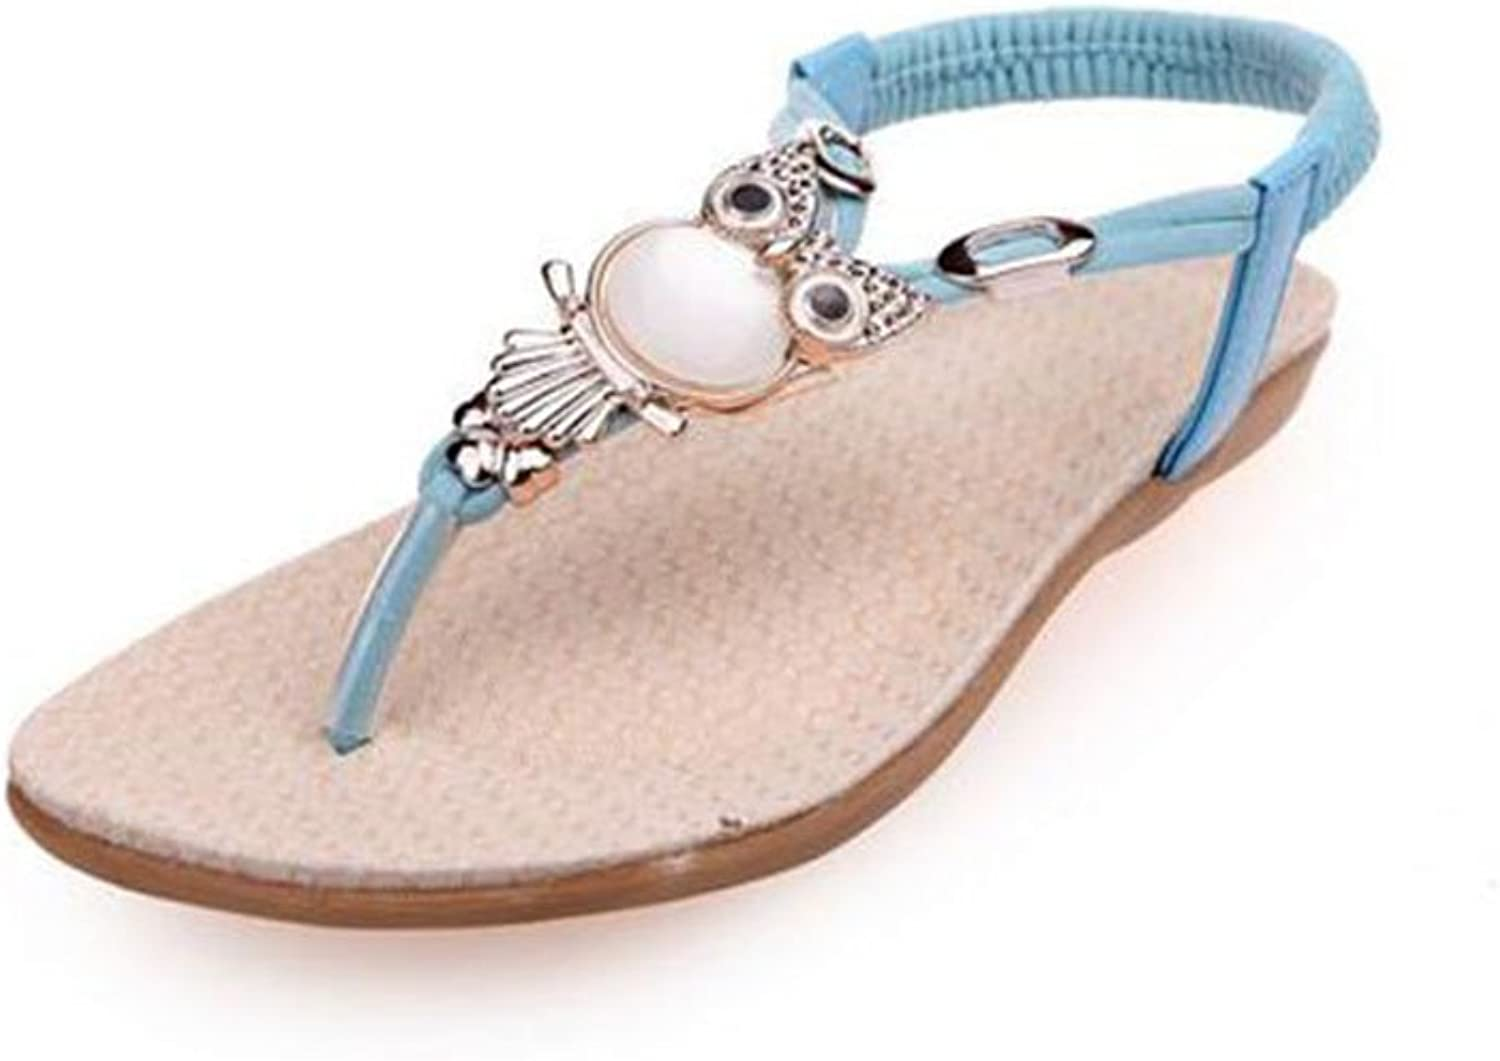 Exing 2018 New Womens's shoes Flat Sandals Female Summer Flat with Beaded Toe Beach shoes